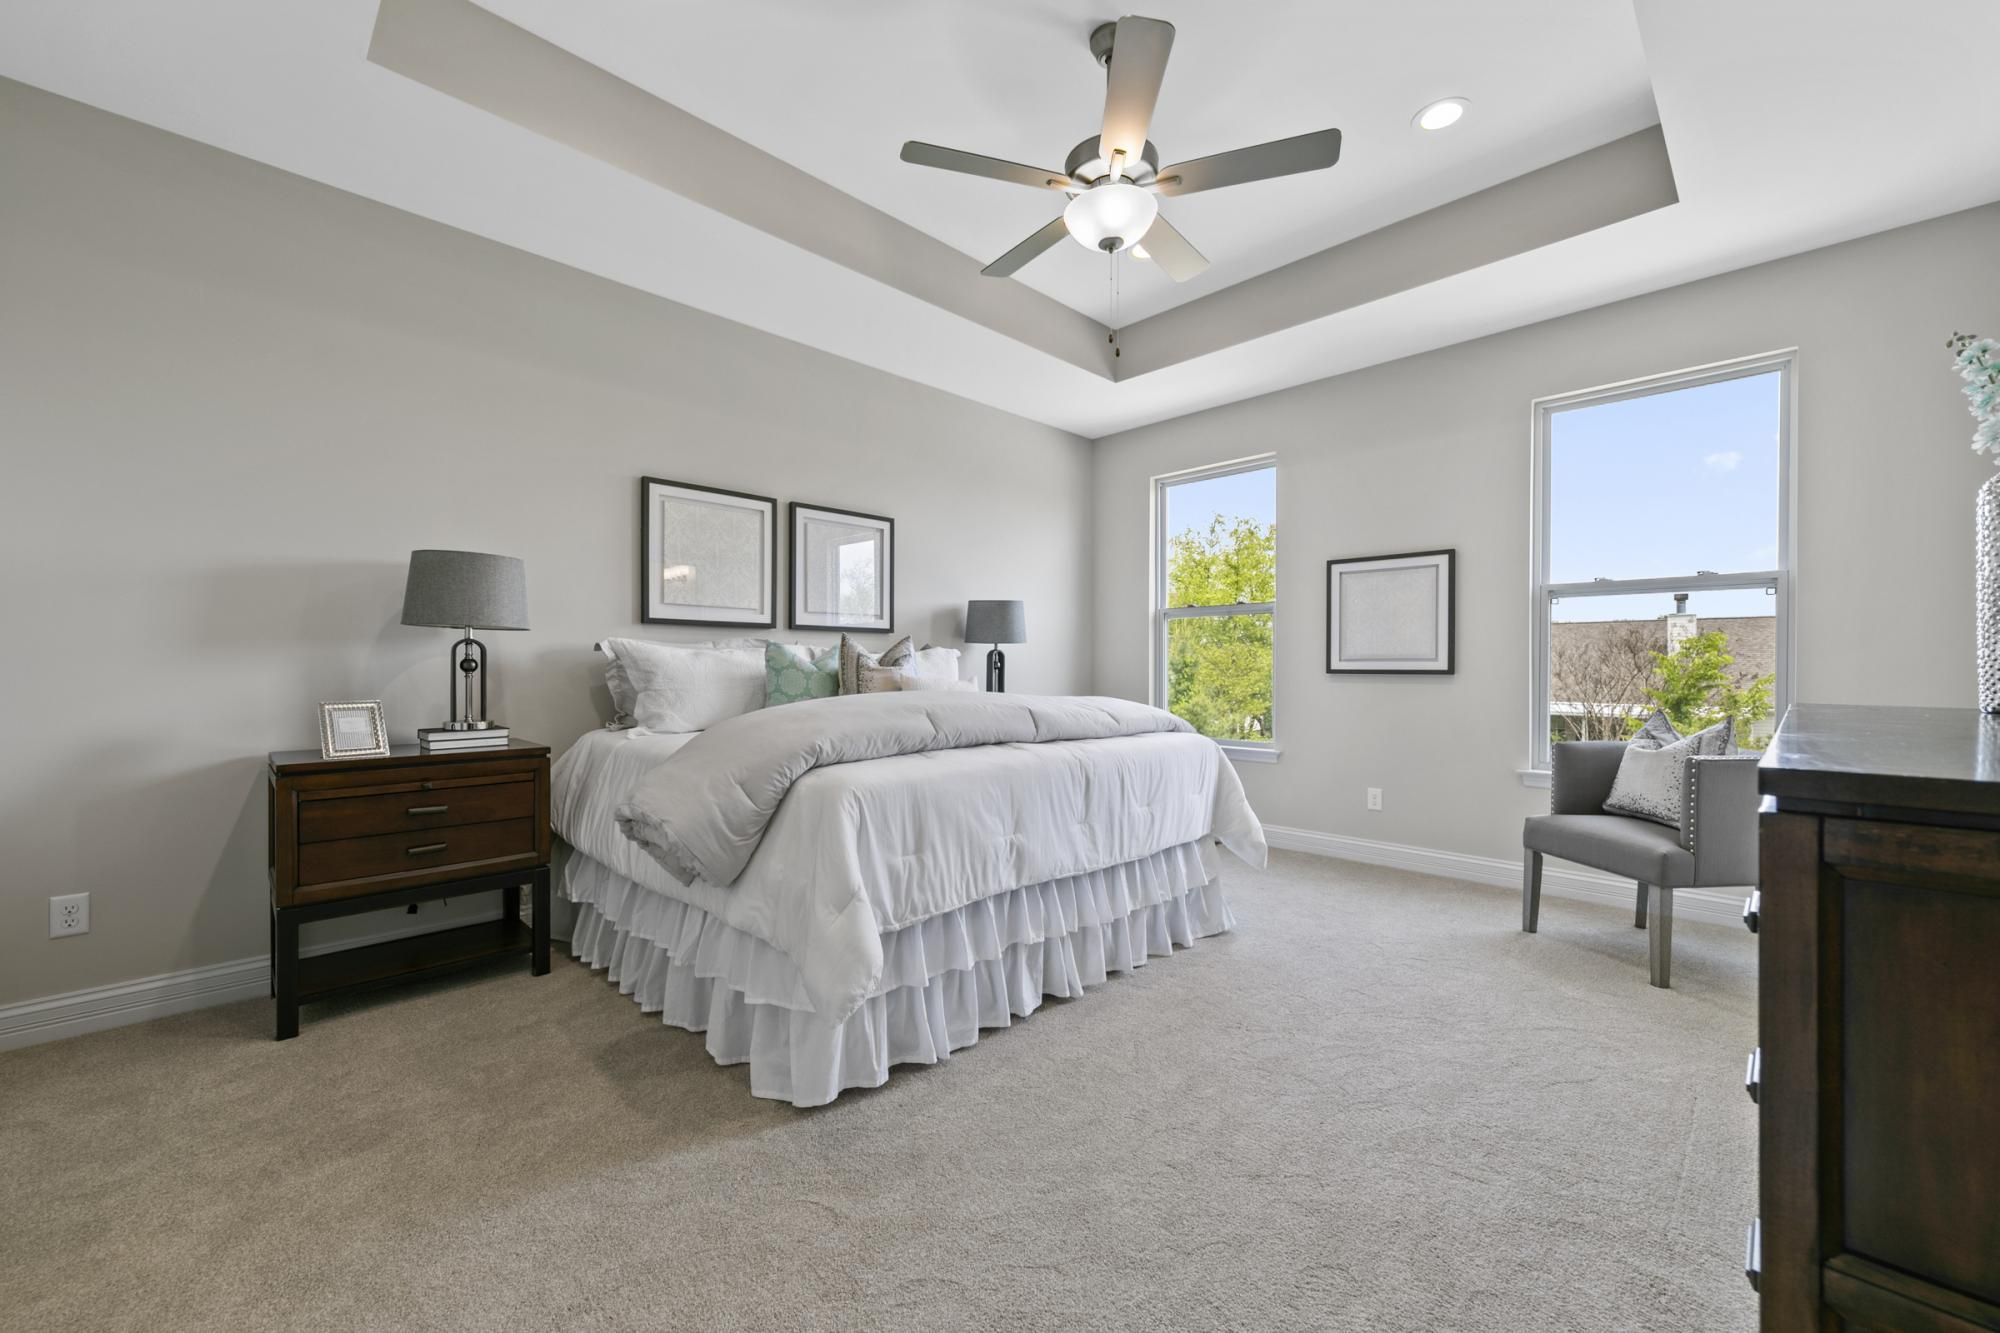 Bedroom featured in the Hemingway By McKelvey Homes in St. Louis, MO